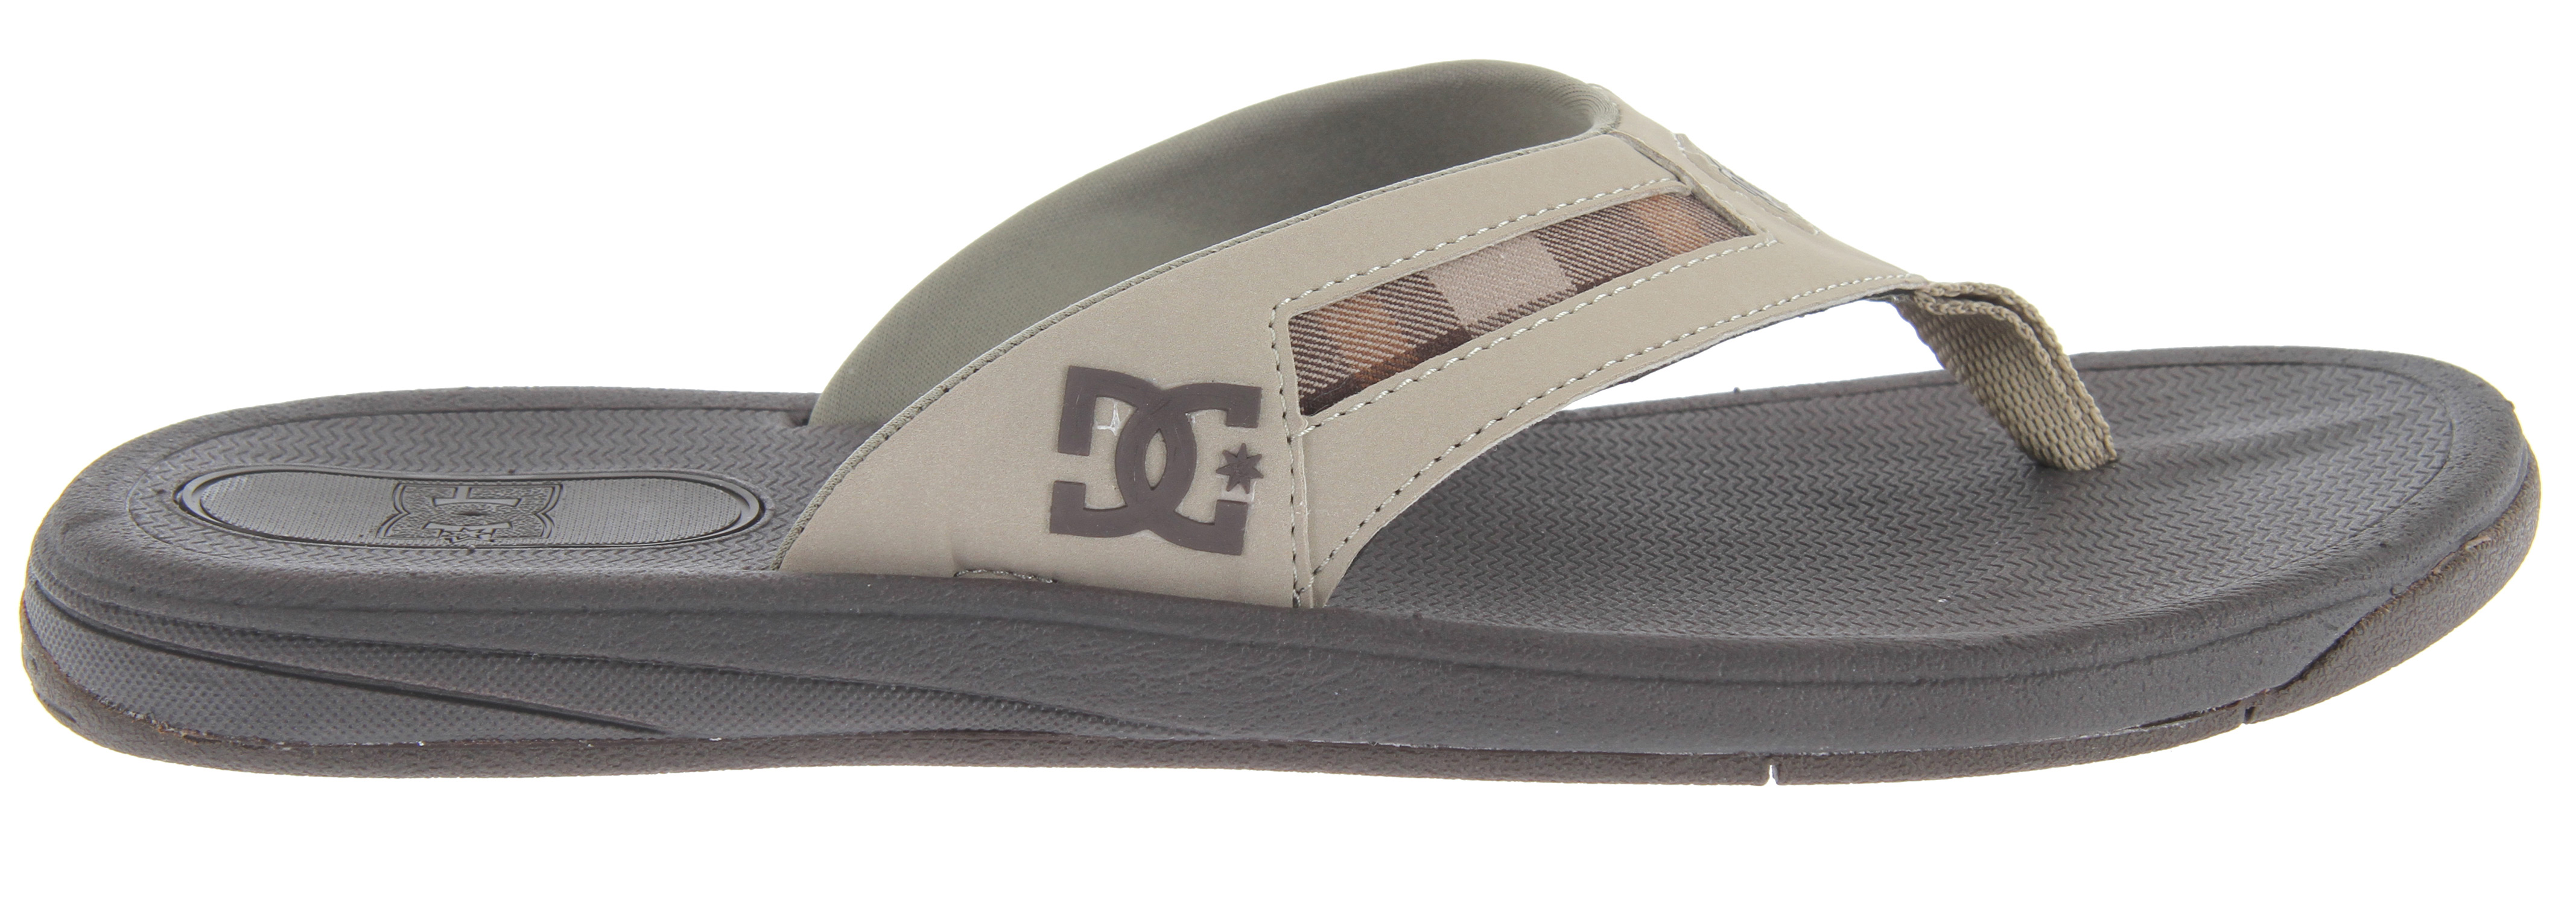 Skateboard Key Features of the DC Cabo Sandals: Super comfortable perennial favorite Synthetic leather Comfortable and foot friendly toe post Non-slip - $29.95